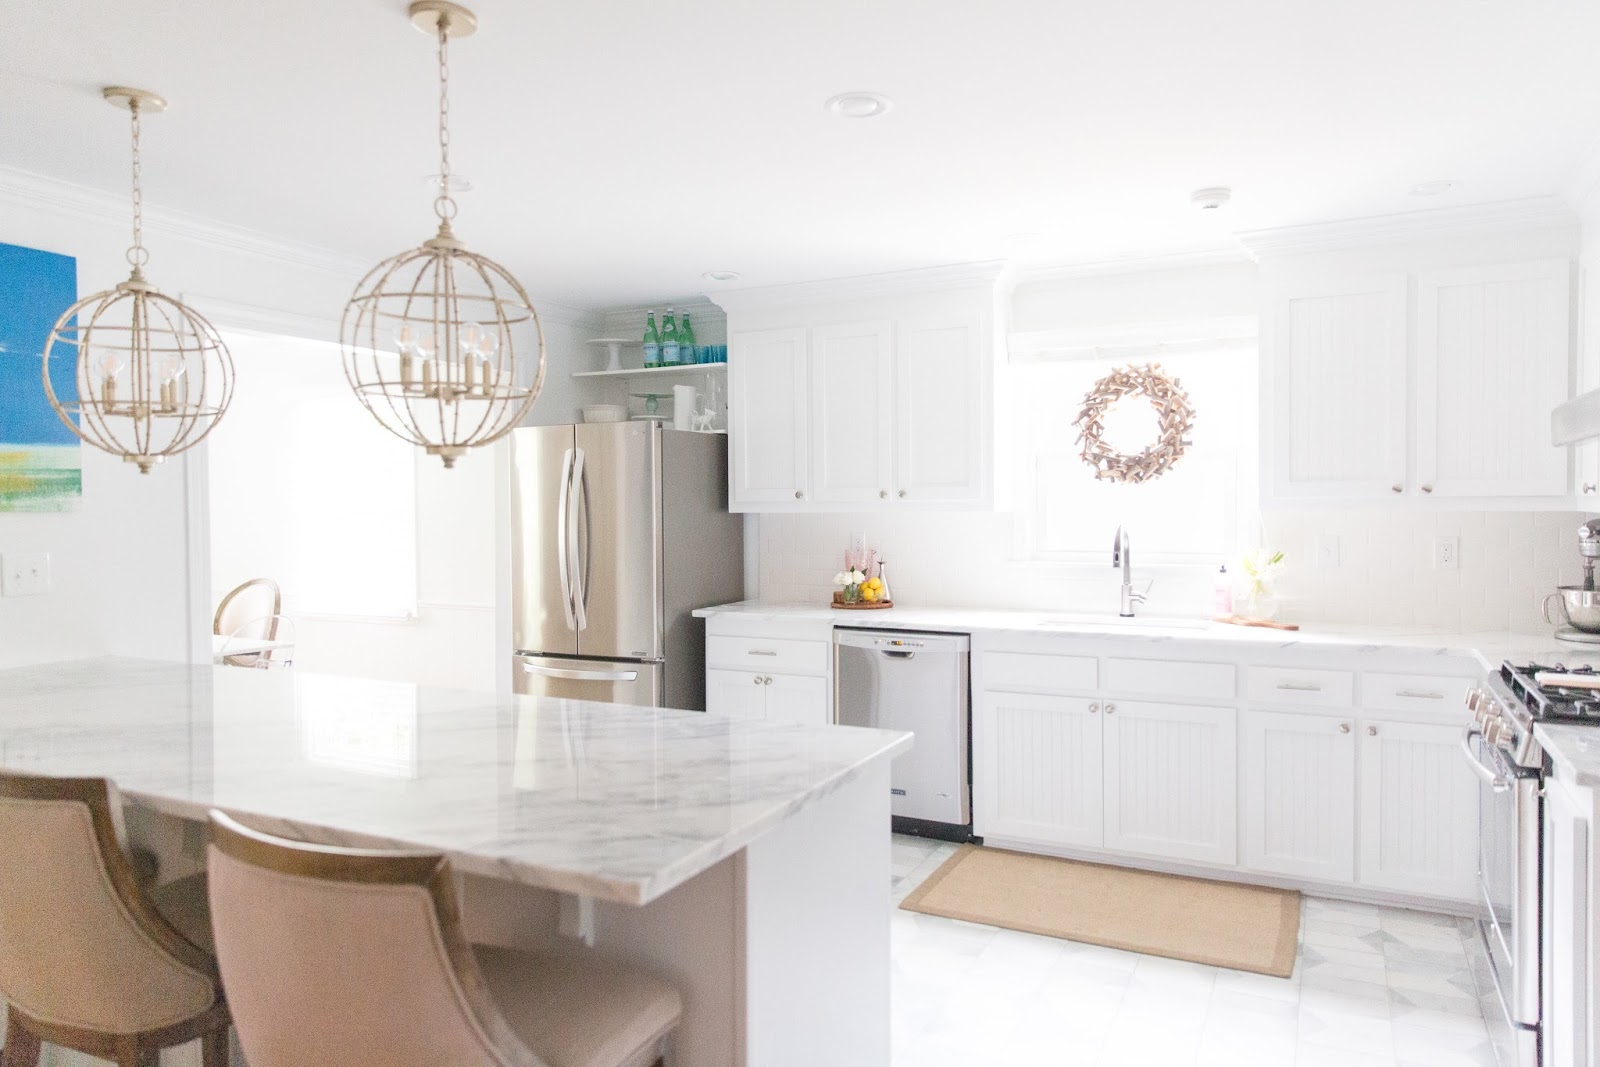 Renovation Before and After: The Kitchen | Olive and Tate